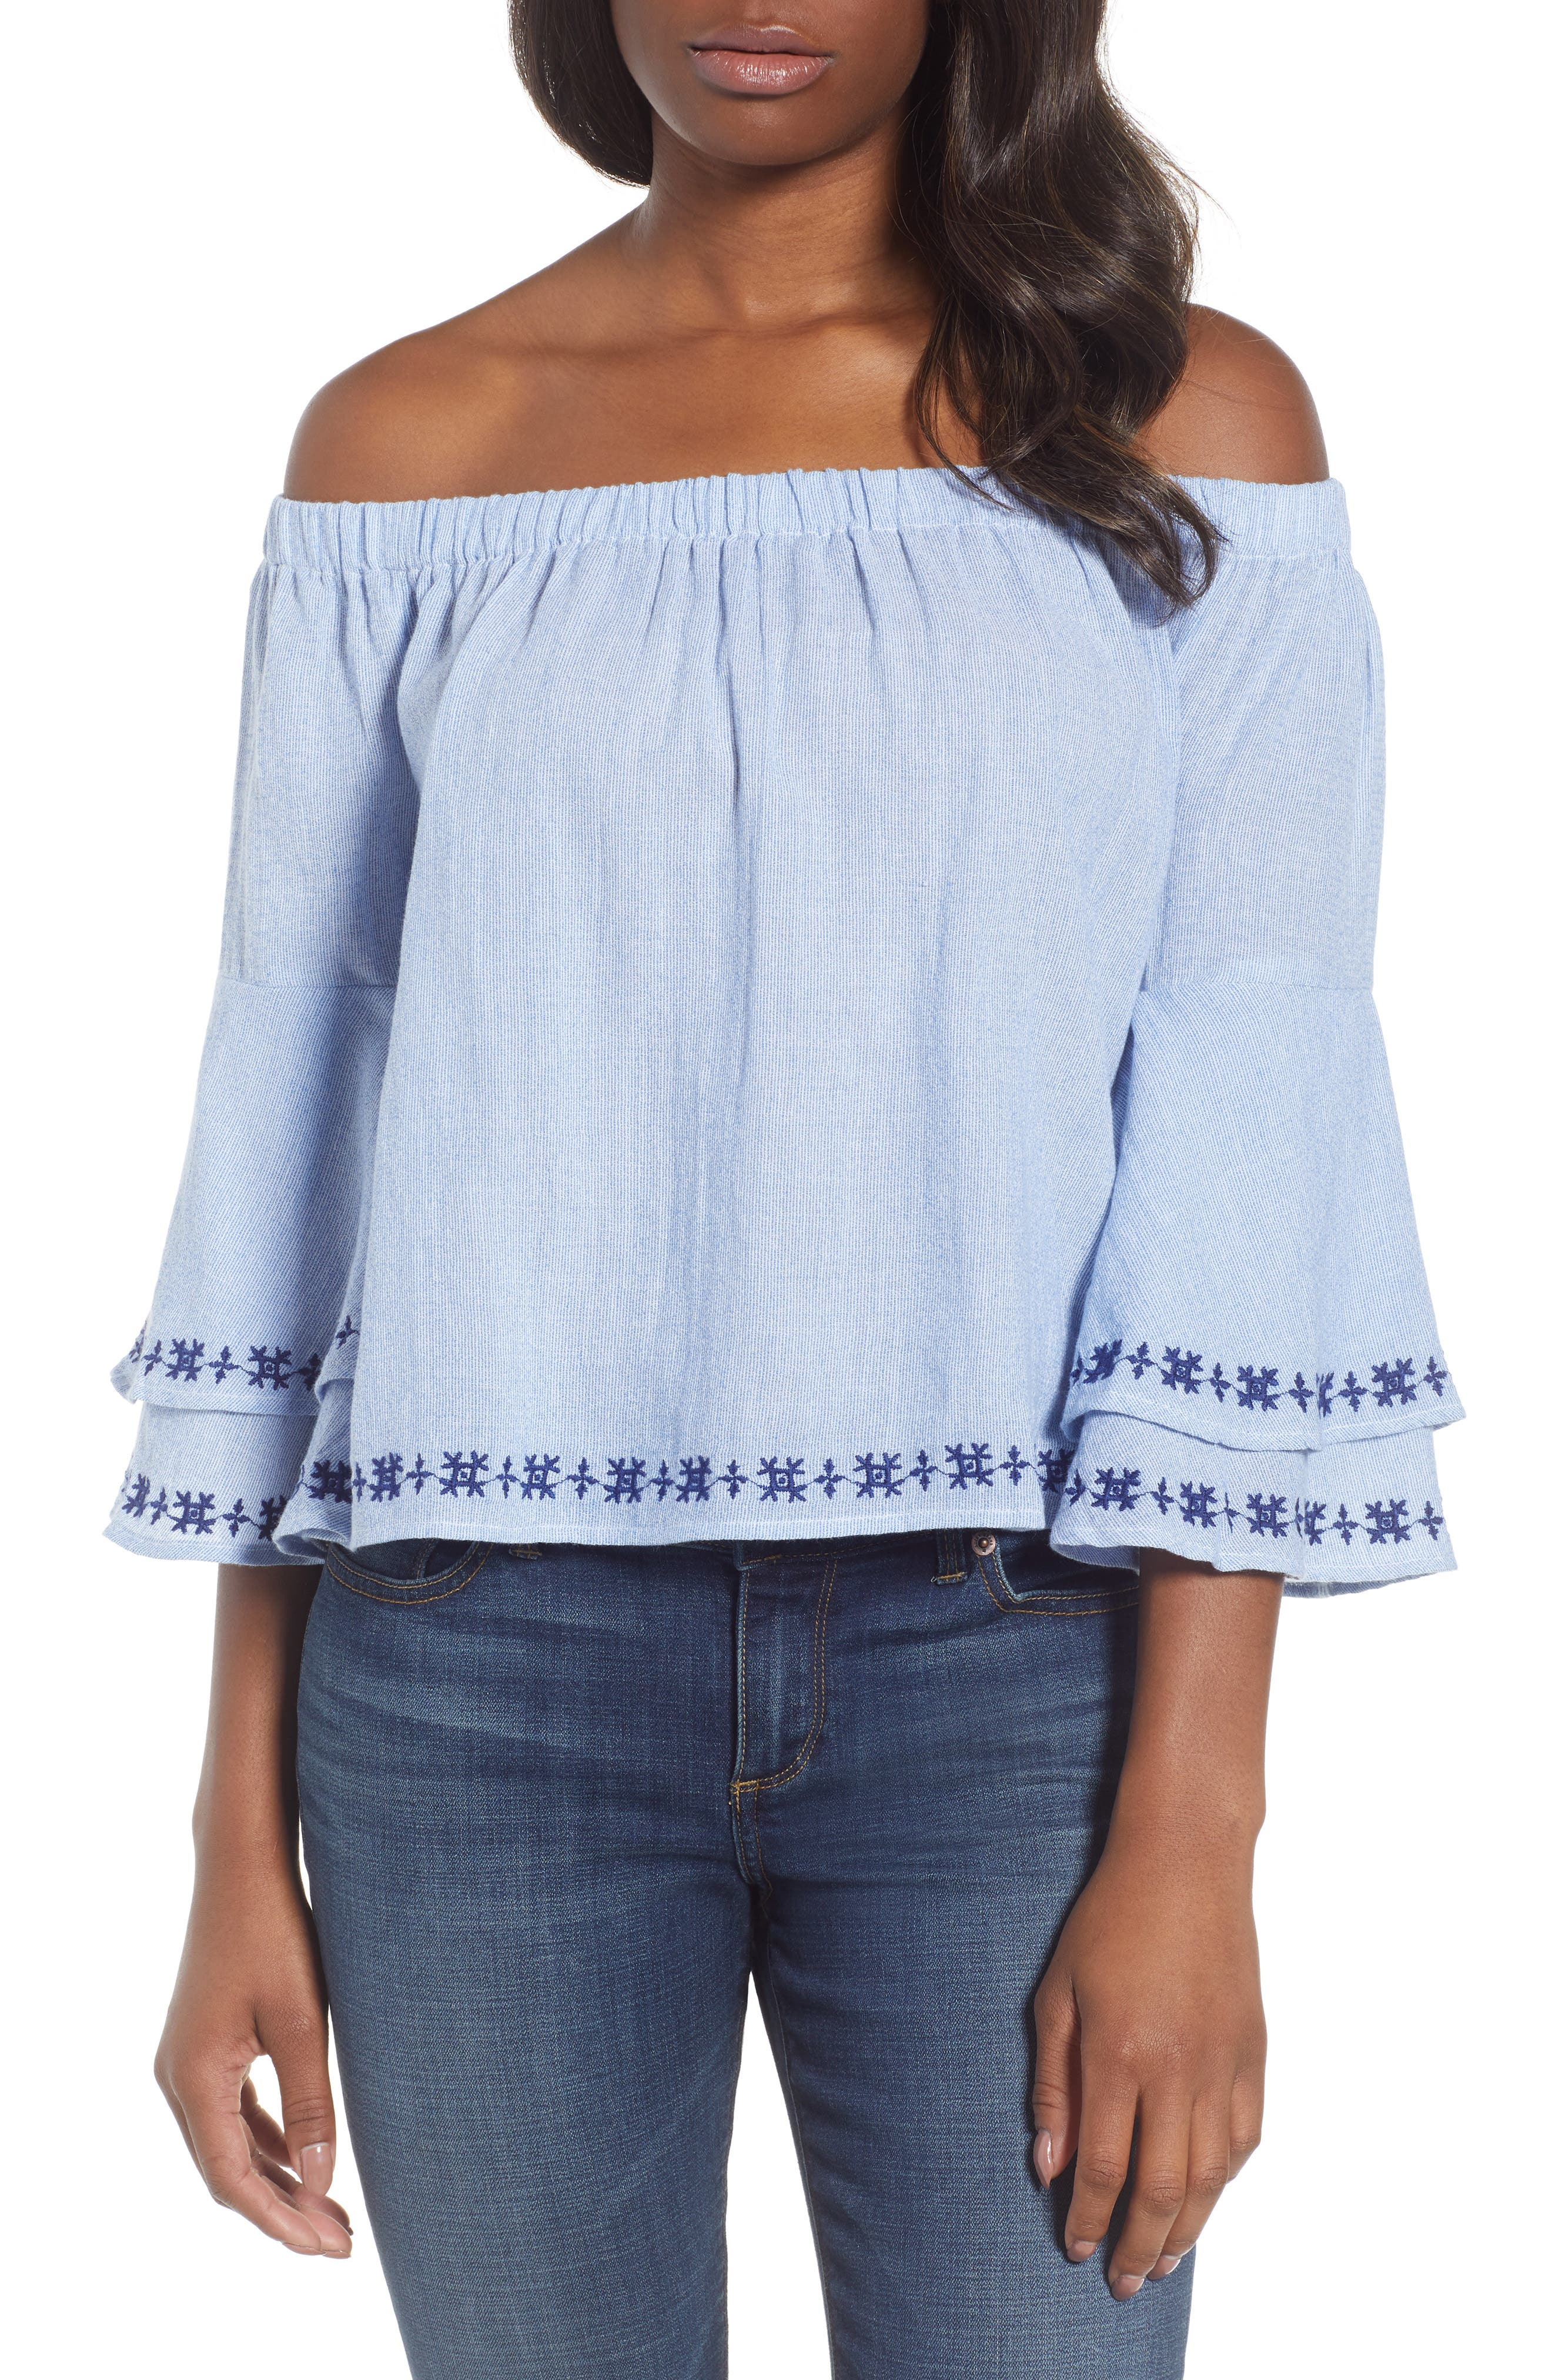 Pinstriped Embroidered Off the Shoulder Cotton Top,                             Main thumbnail 1, color,                             461